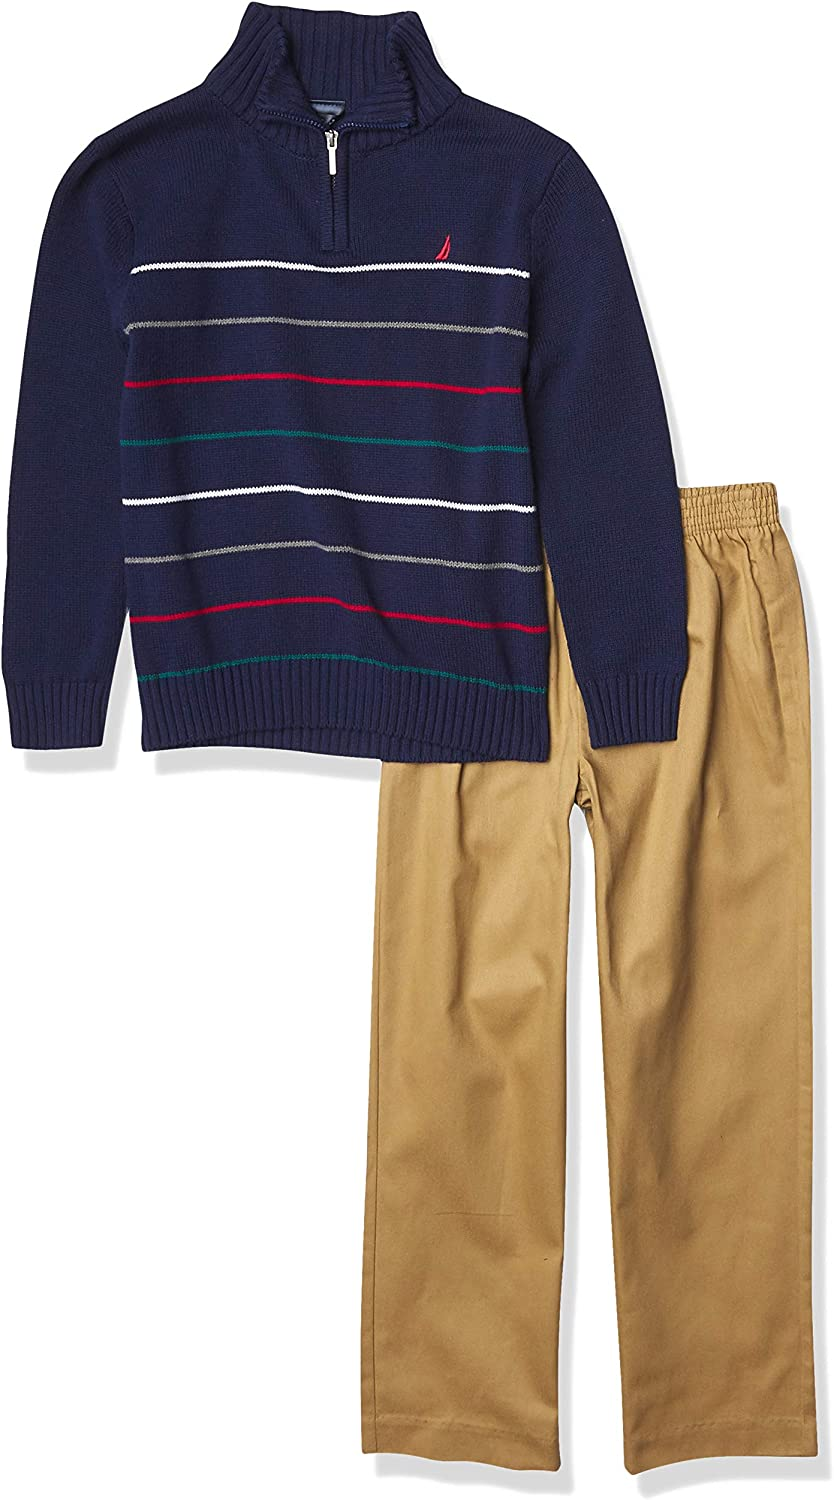 Nautica Boys' 2 Piece Sweater Set with Pants